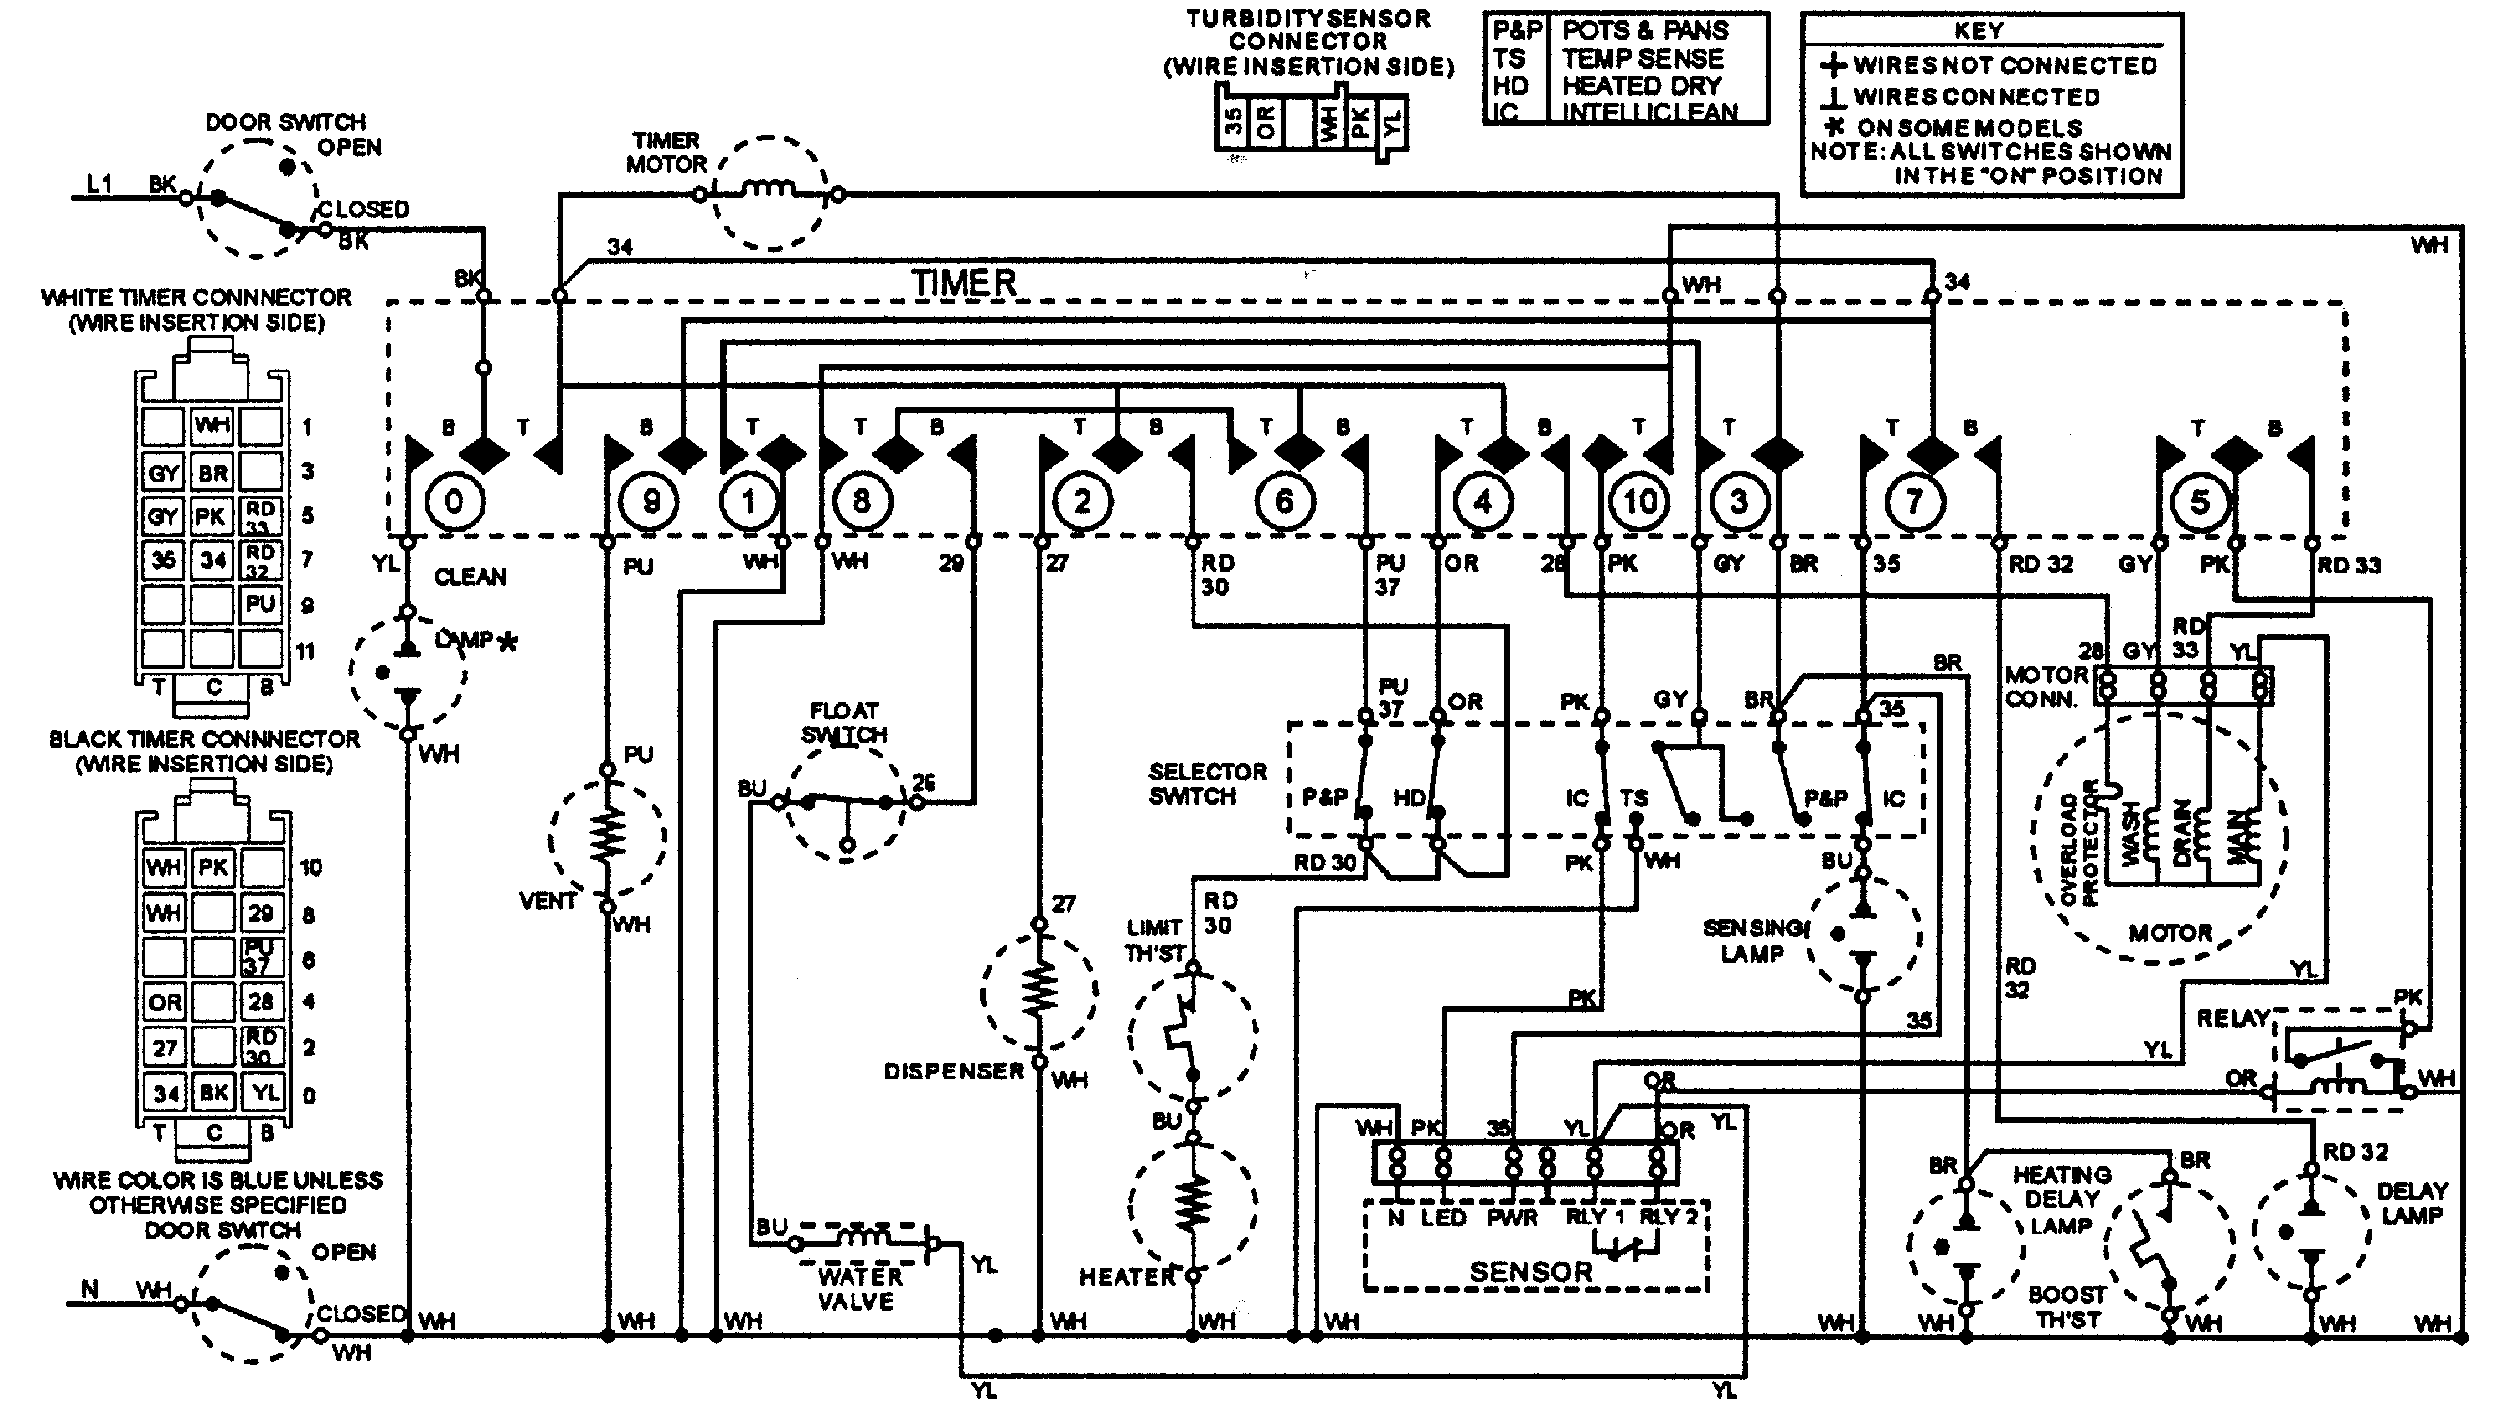 Wiring Diagram Of Washing Machine Pdf Kenworth Truck Wiper Switch Wiring Diagrams For Wiring Diagram Schematics